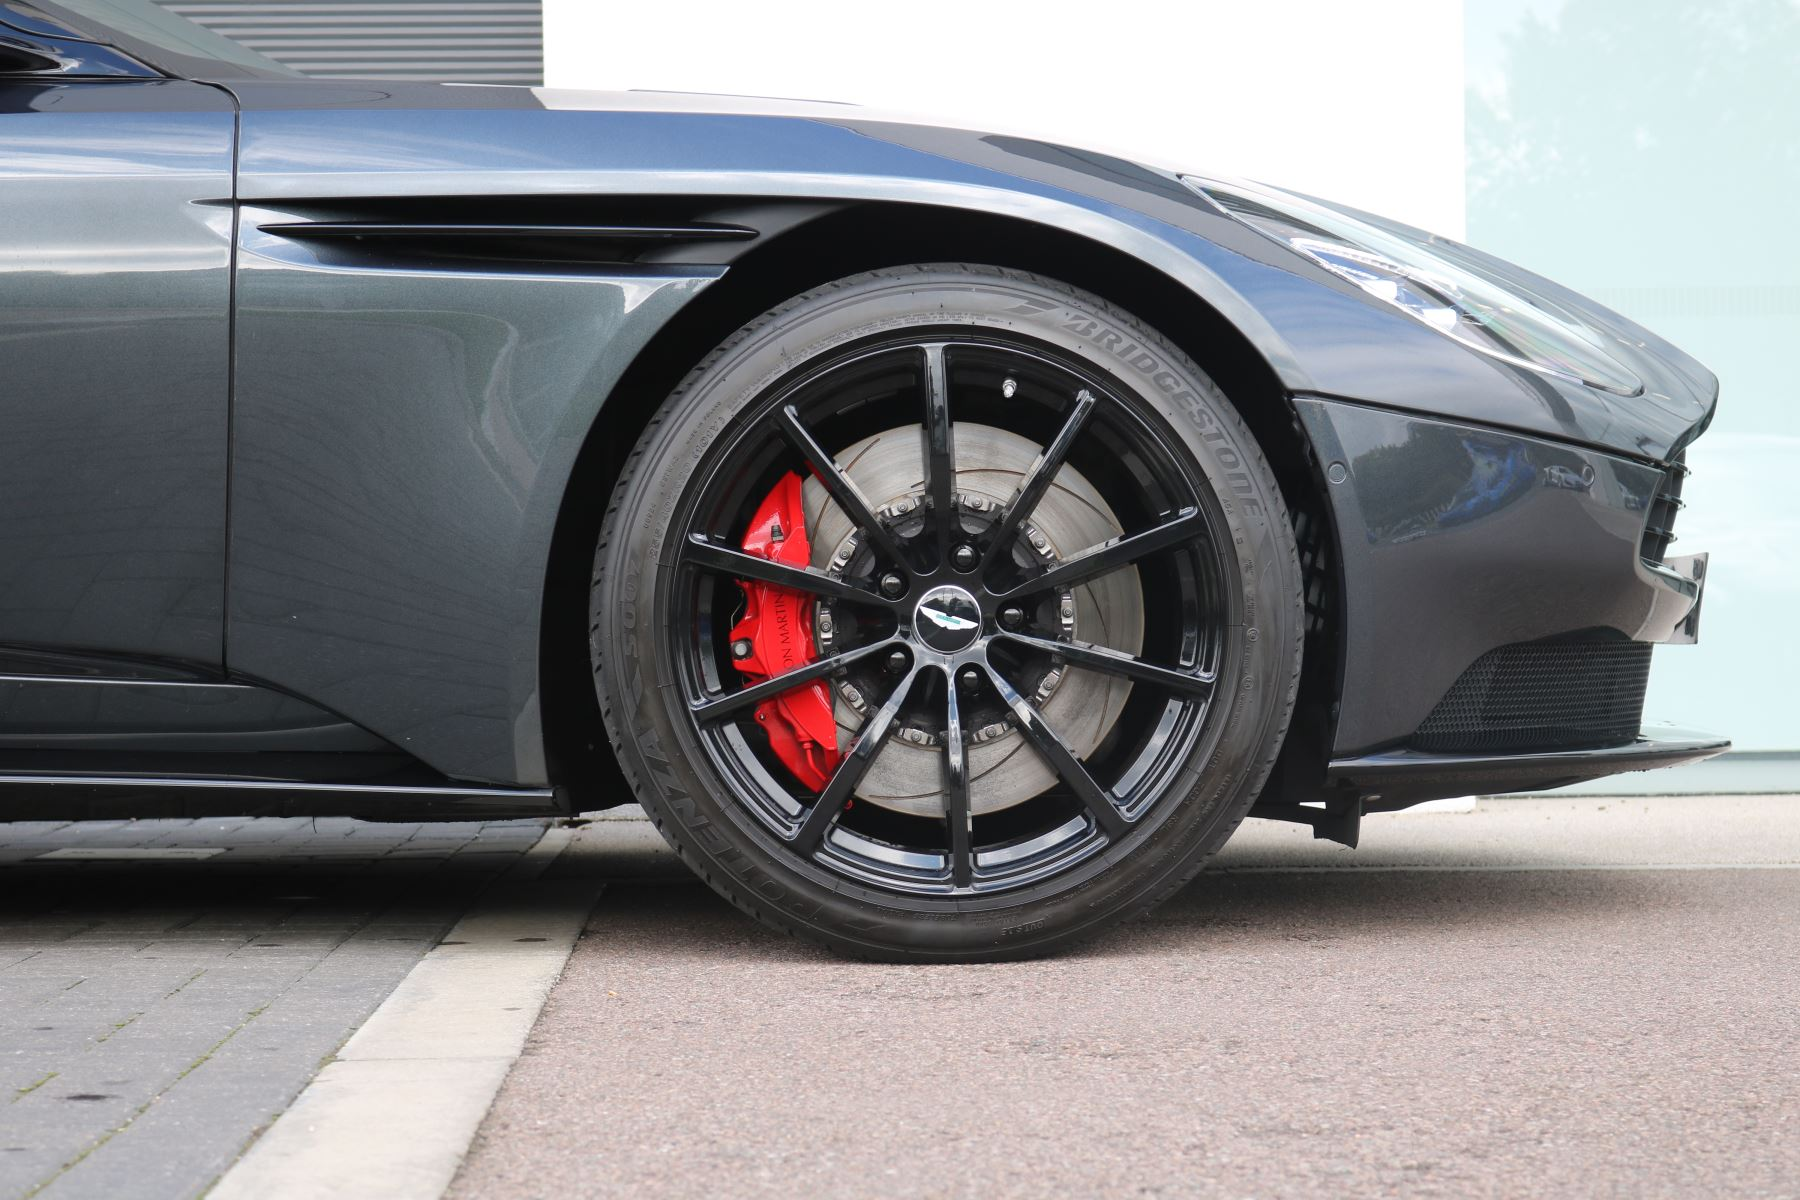 Aston Martin DB11 V12 AMR 2dr Touchtronic FREE SERVICING  image 16